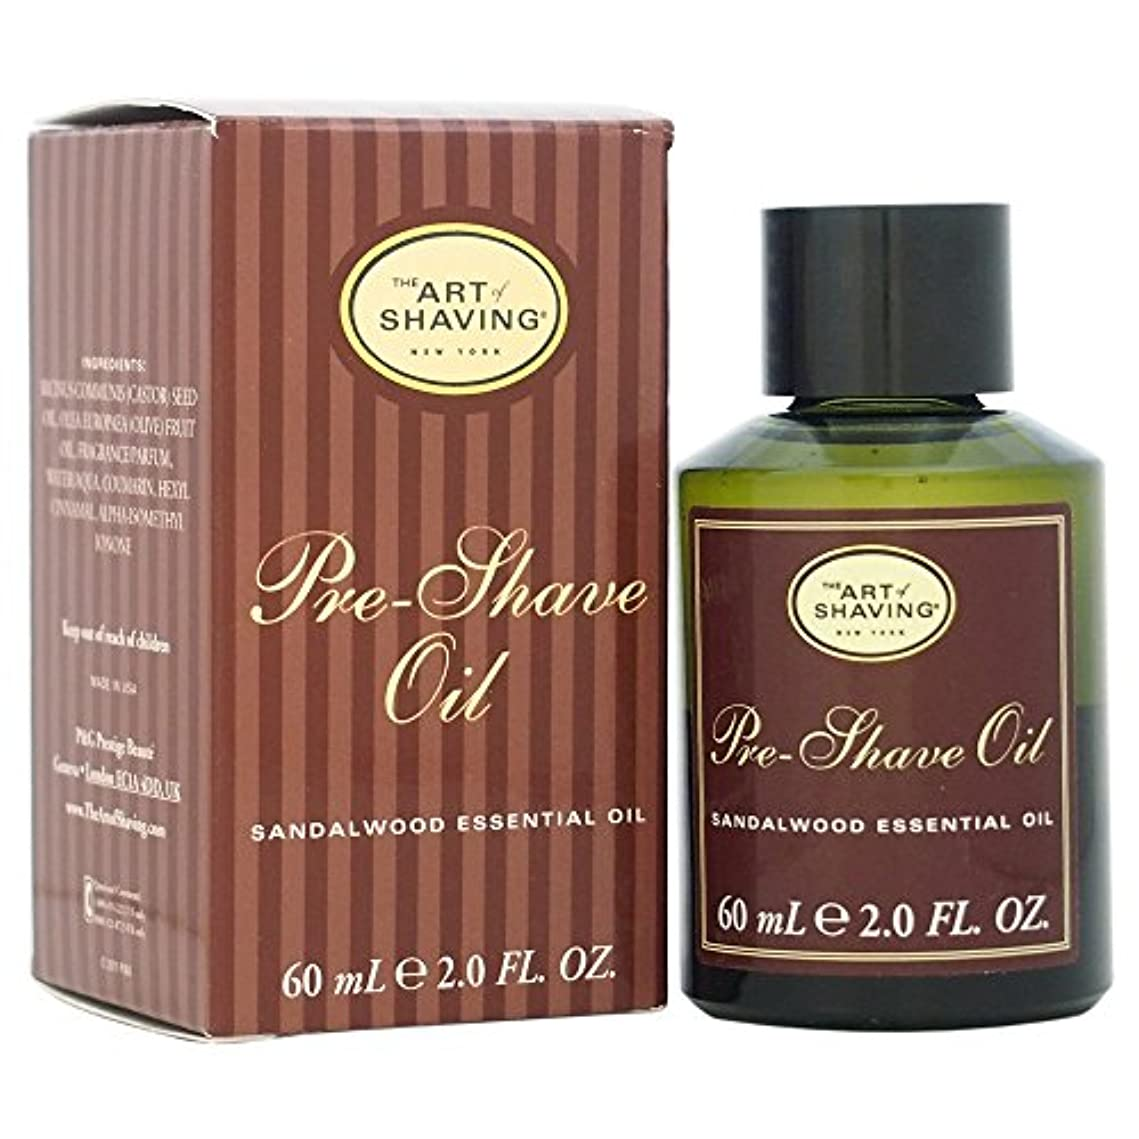 薬局ドールレプリカThe Art Of Shaving Pre-Shave Oil With Sandalwood Essential Oil (並行輸入品) [並行輸入品]